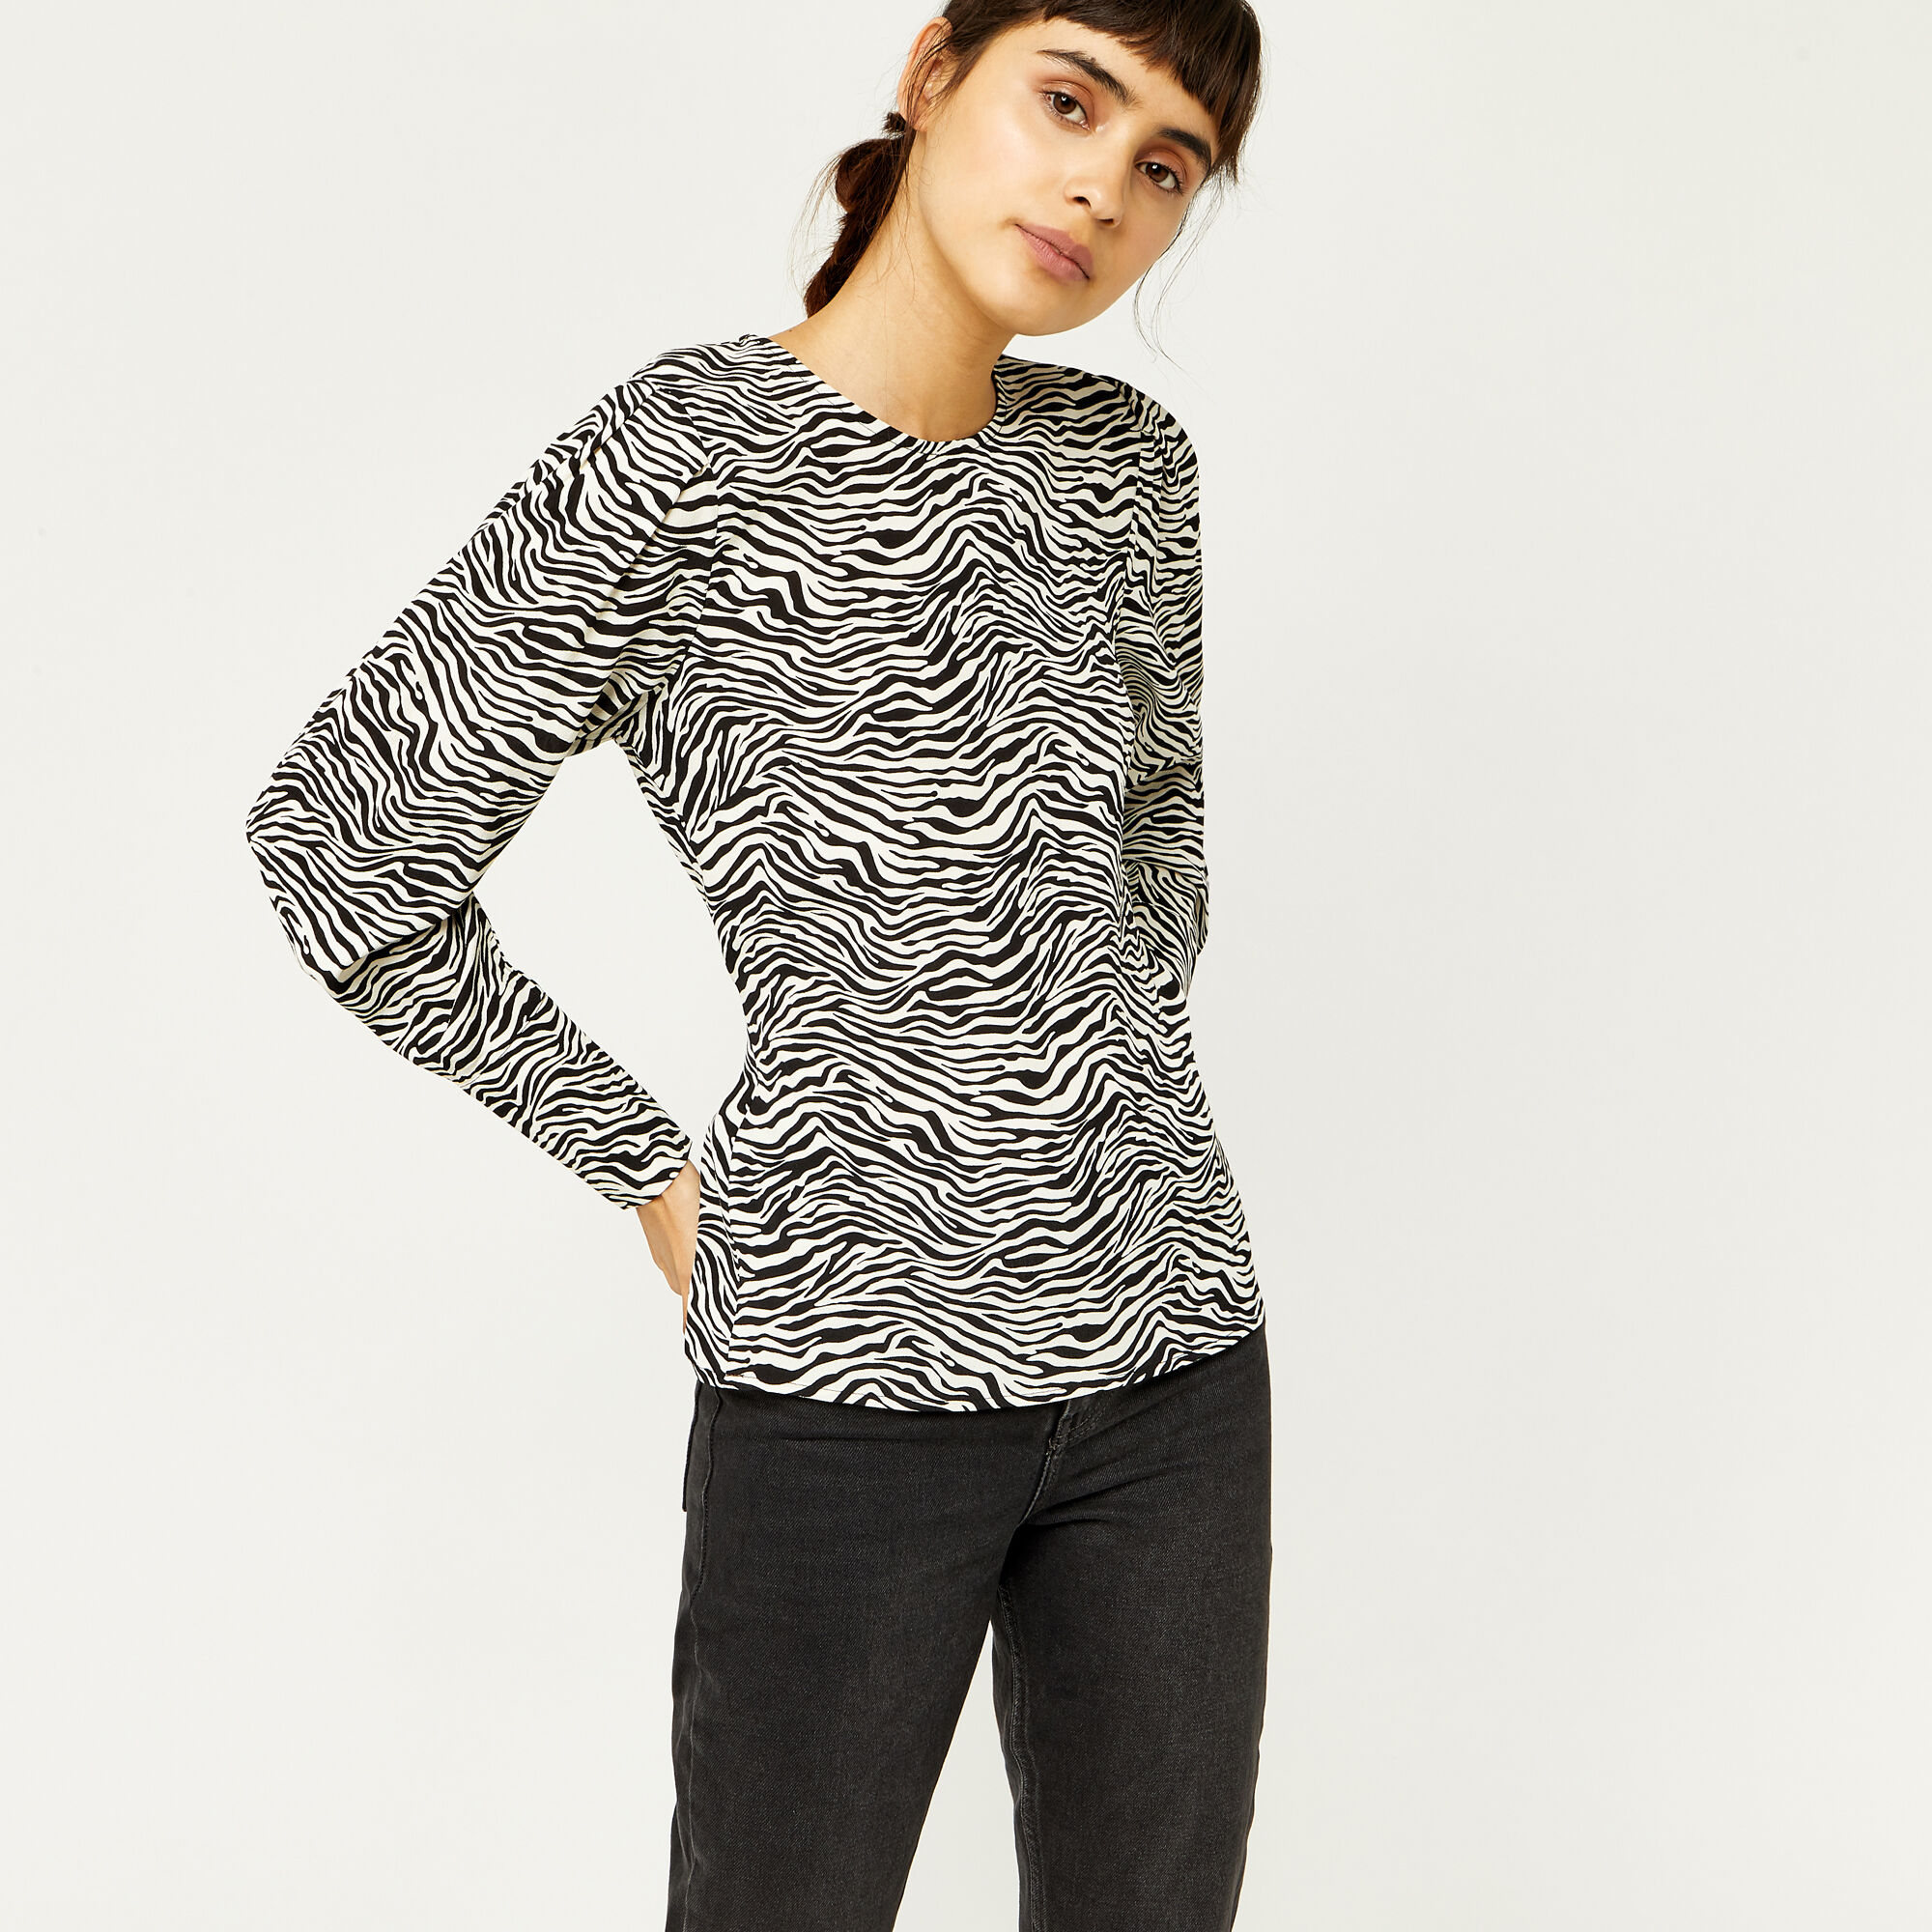 Warehouse, ZEBRA PRINT PUFF SLEEVE TOP Zebra 1